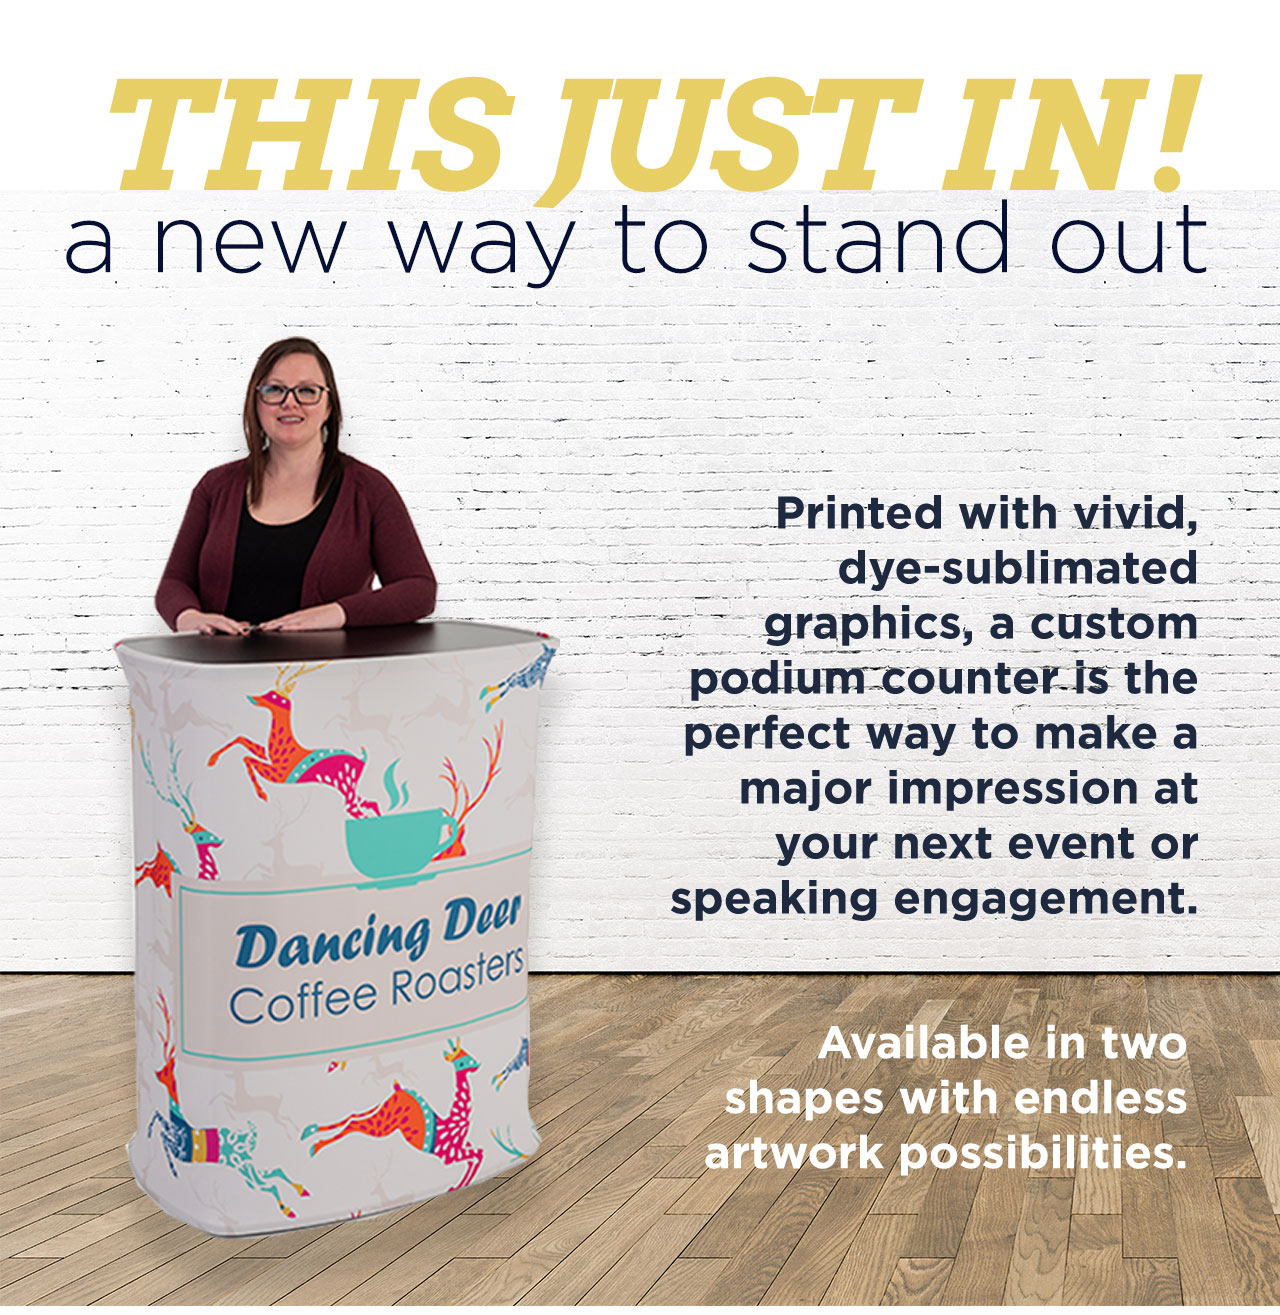 THIS JUST IN! a new way to stand out